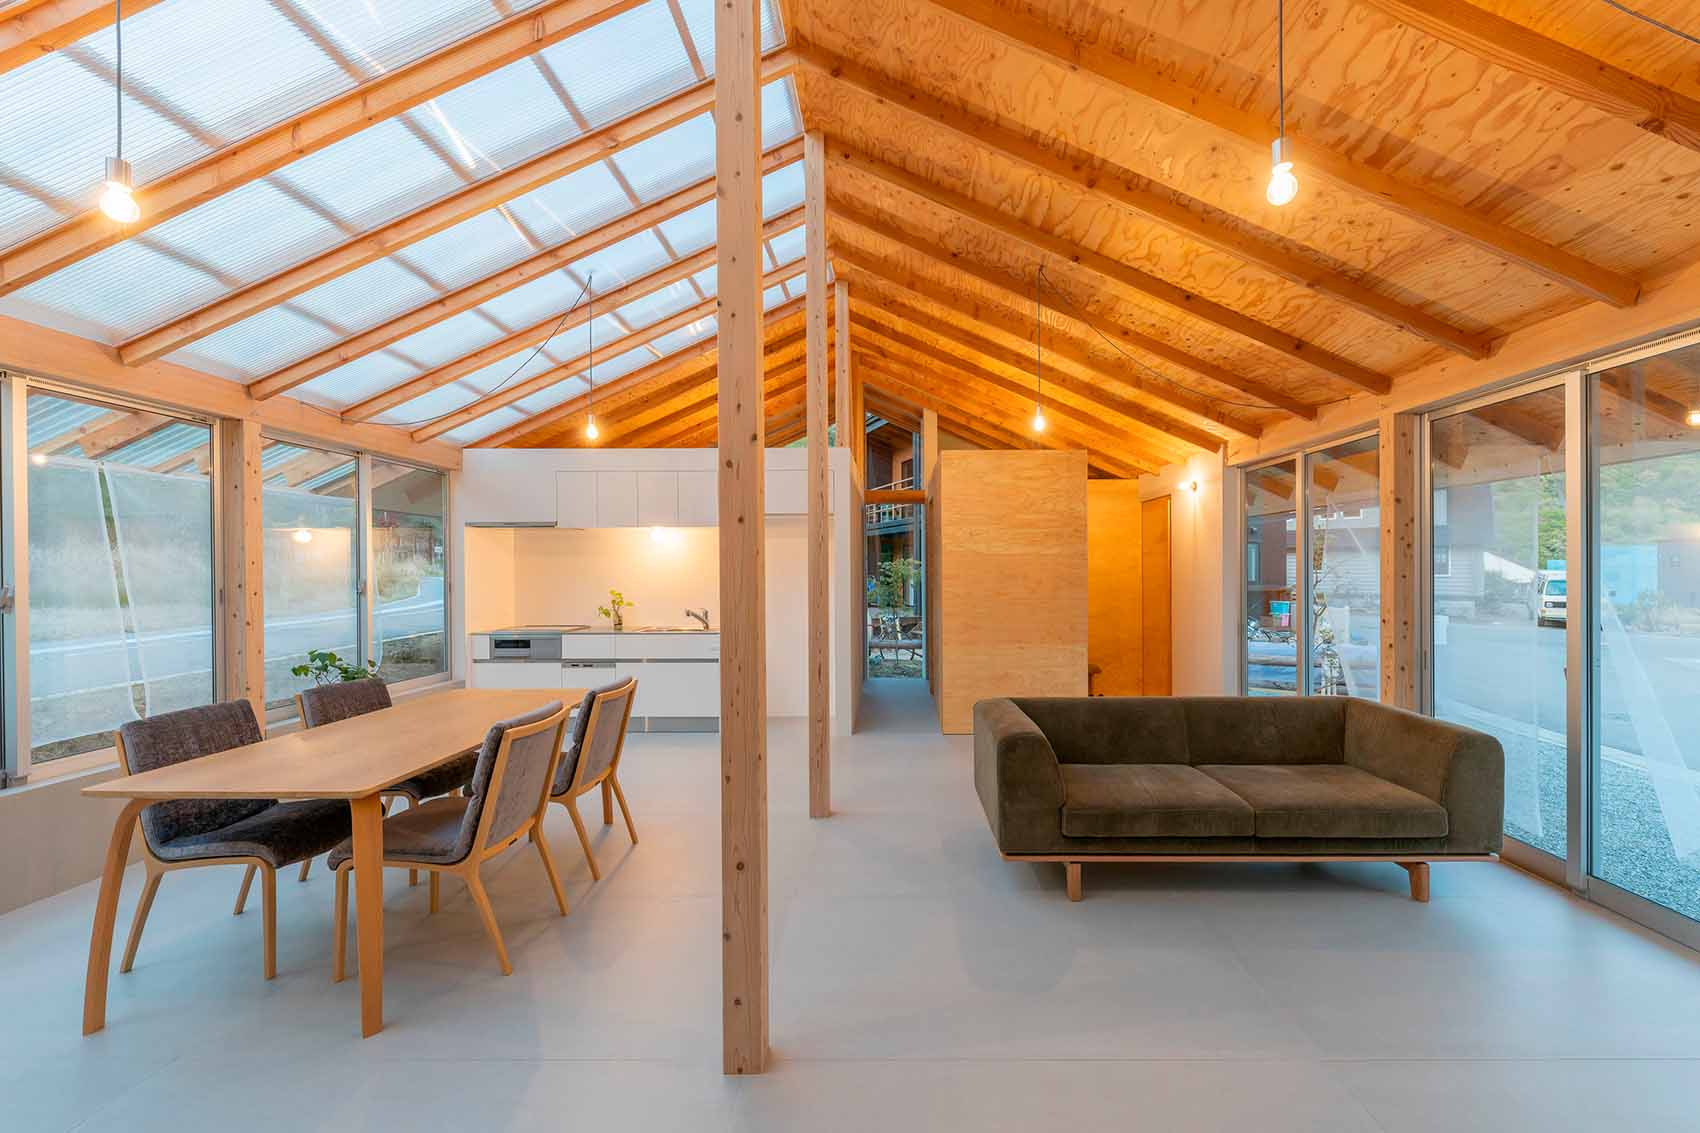 House in Minohshinmachi. Residential charm and elegance embrace nature